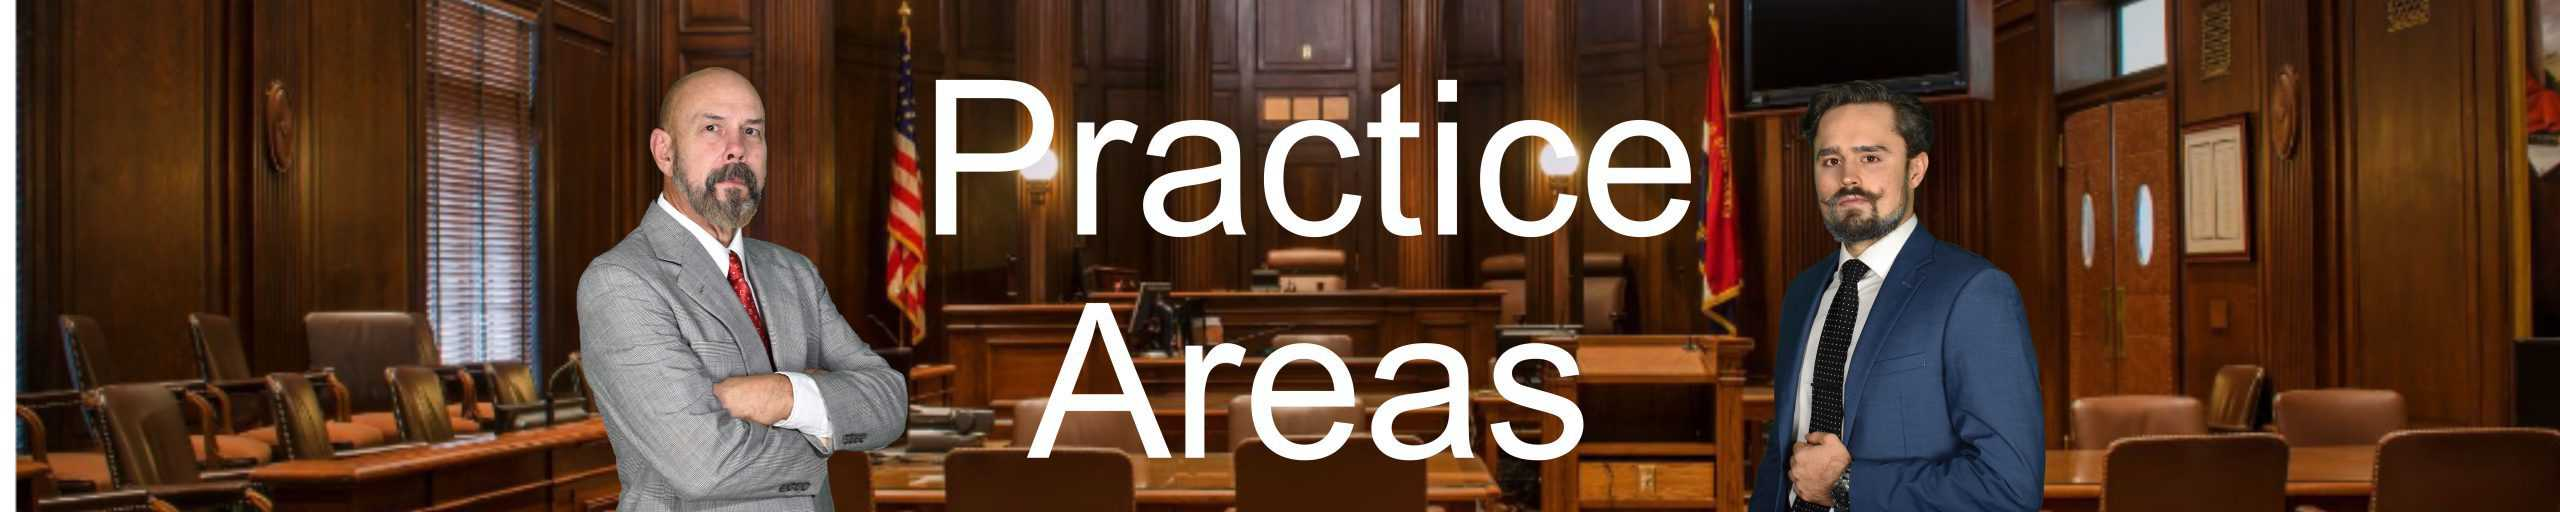 Practice-Areas-Merck-Law-Personal-Injury-Attorneys-Georgia-South-Carolina-Hurt-Settlement-Money-Car-Accident-scaled